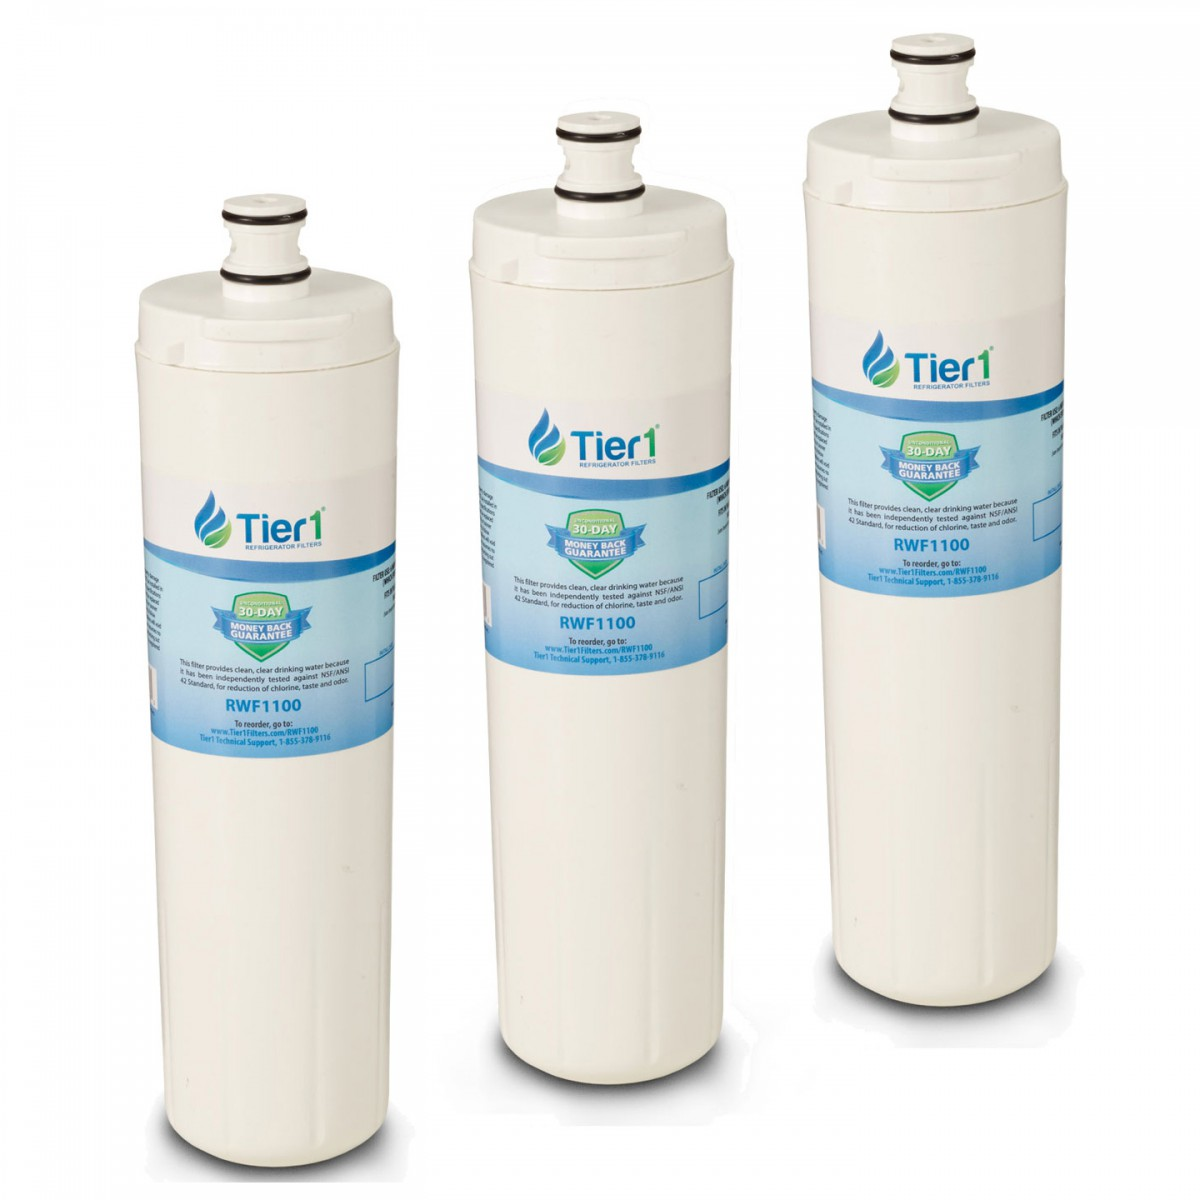 Whkf Implus Bosch Replacement Refrigerator Water Filter By